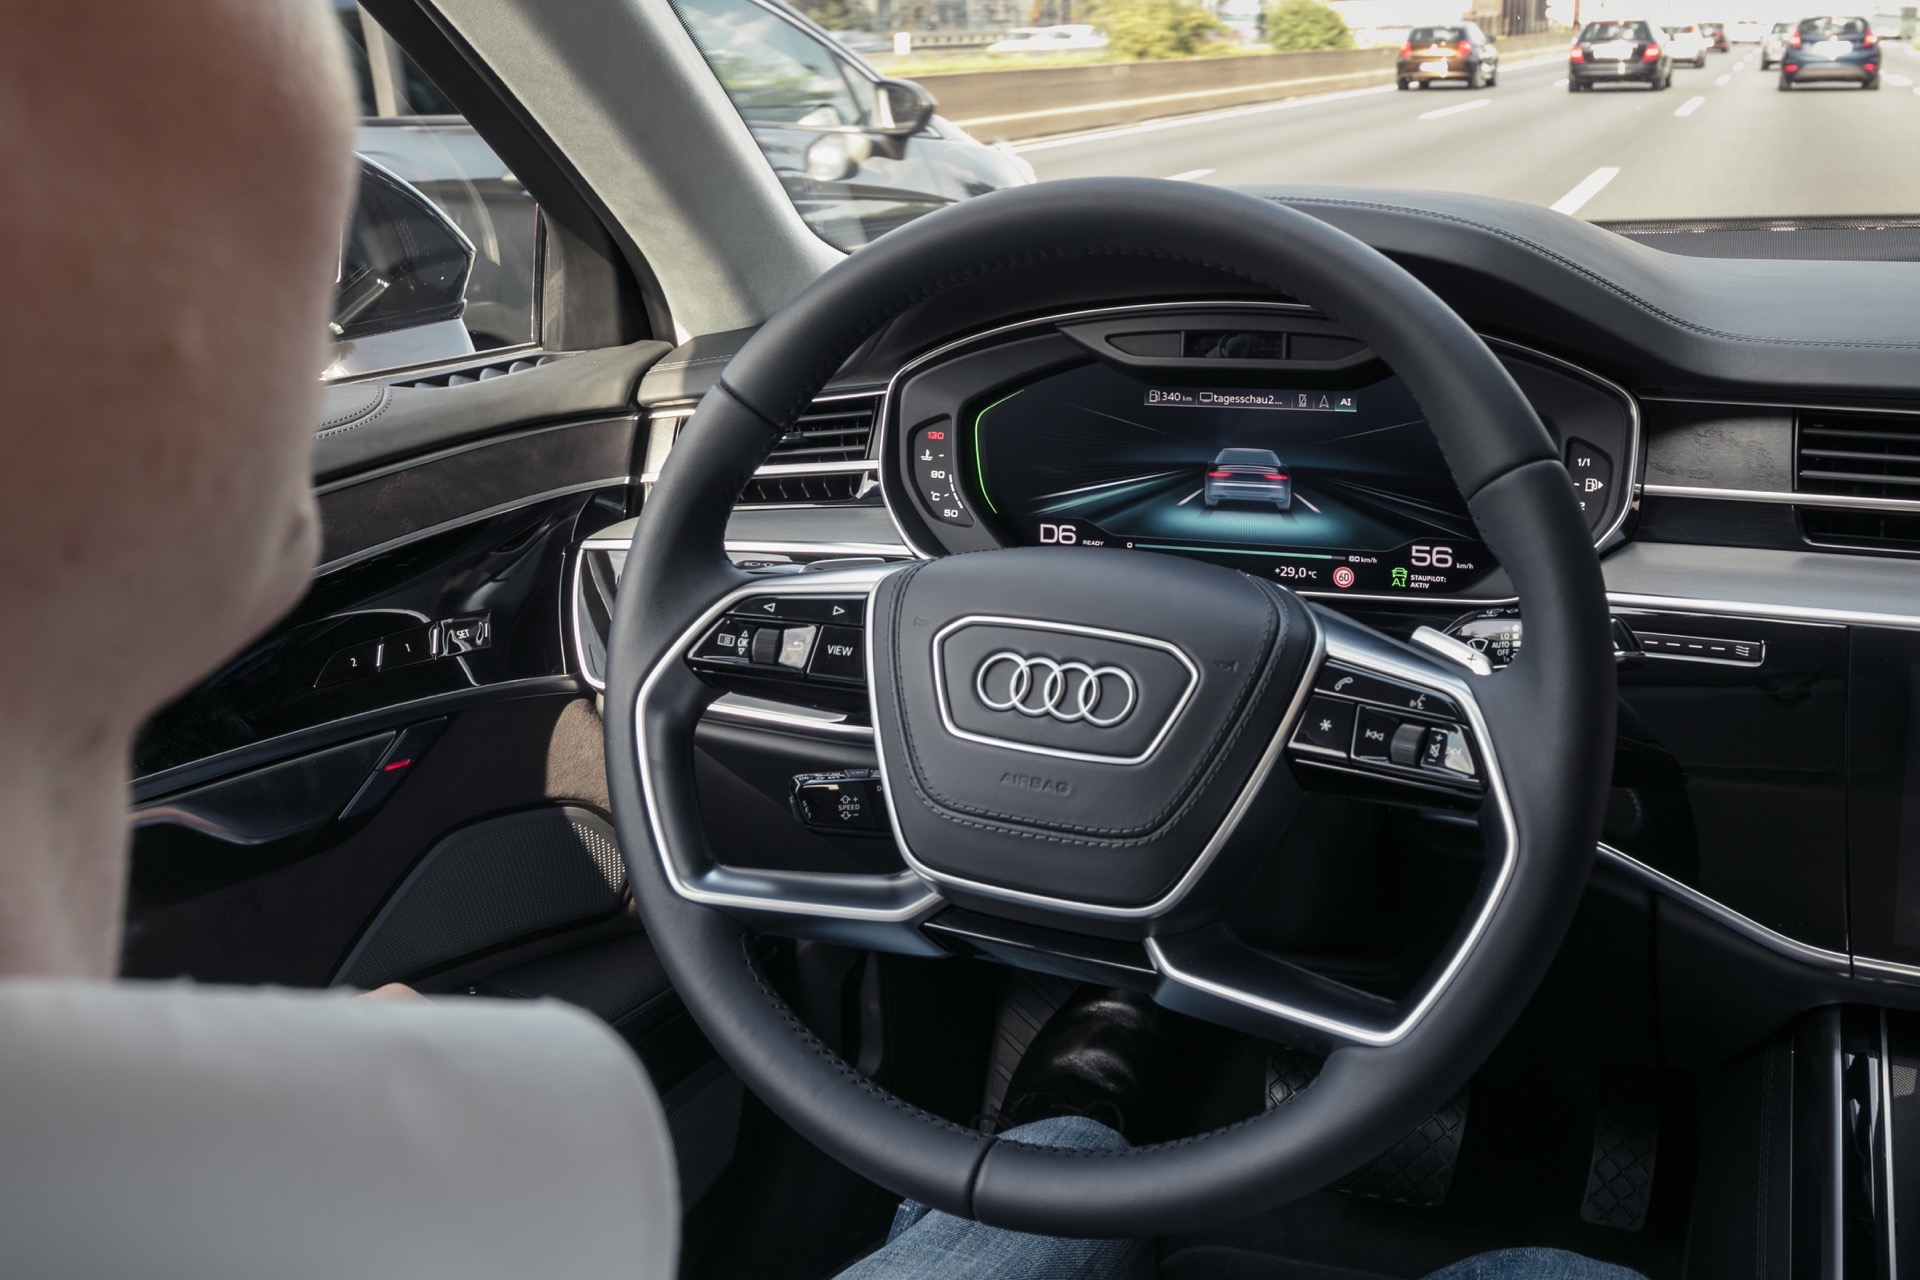 Audi looking to have Level 4 Autonomy by 2021